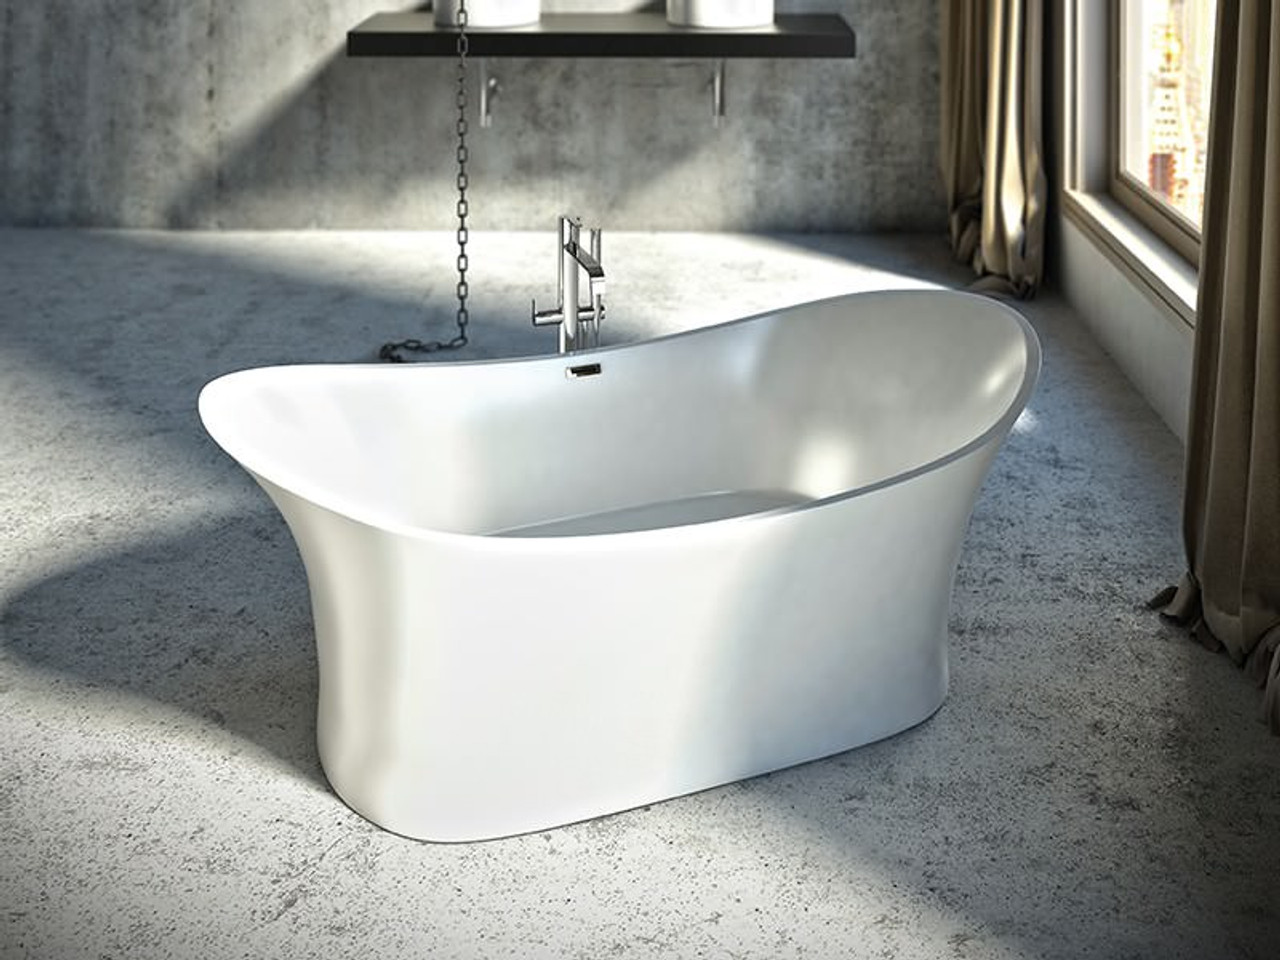 "mirolin sussex freestanding bath tub 71"" - york taps"